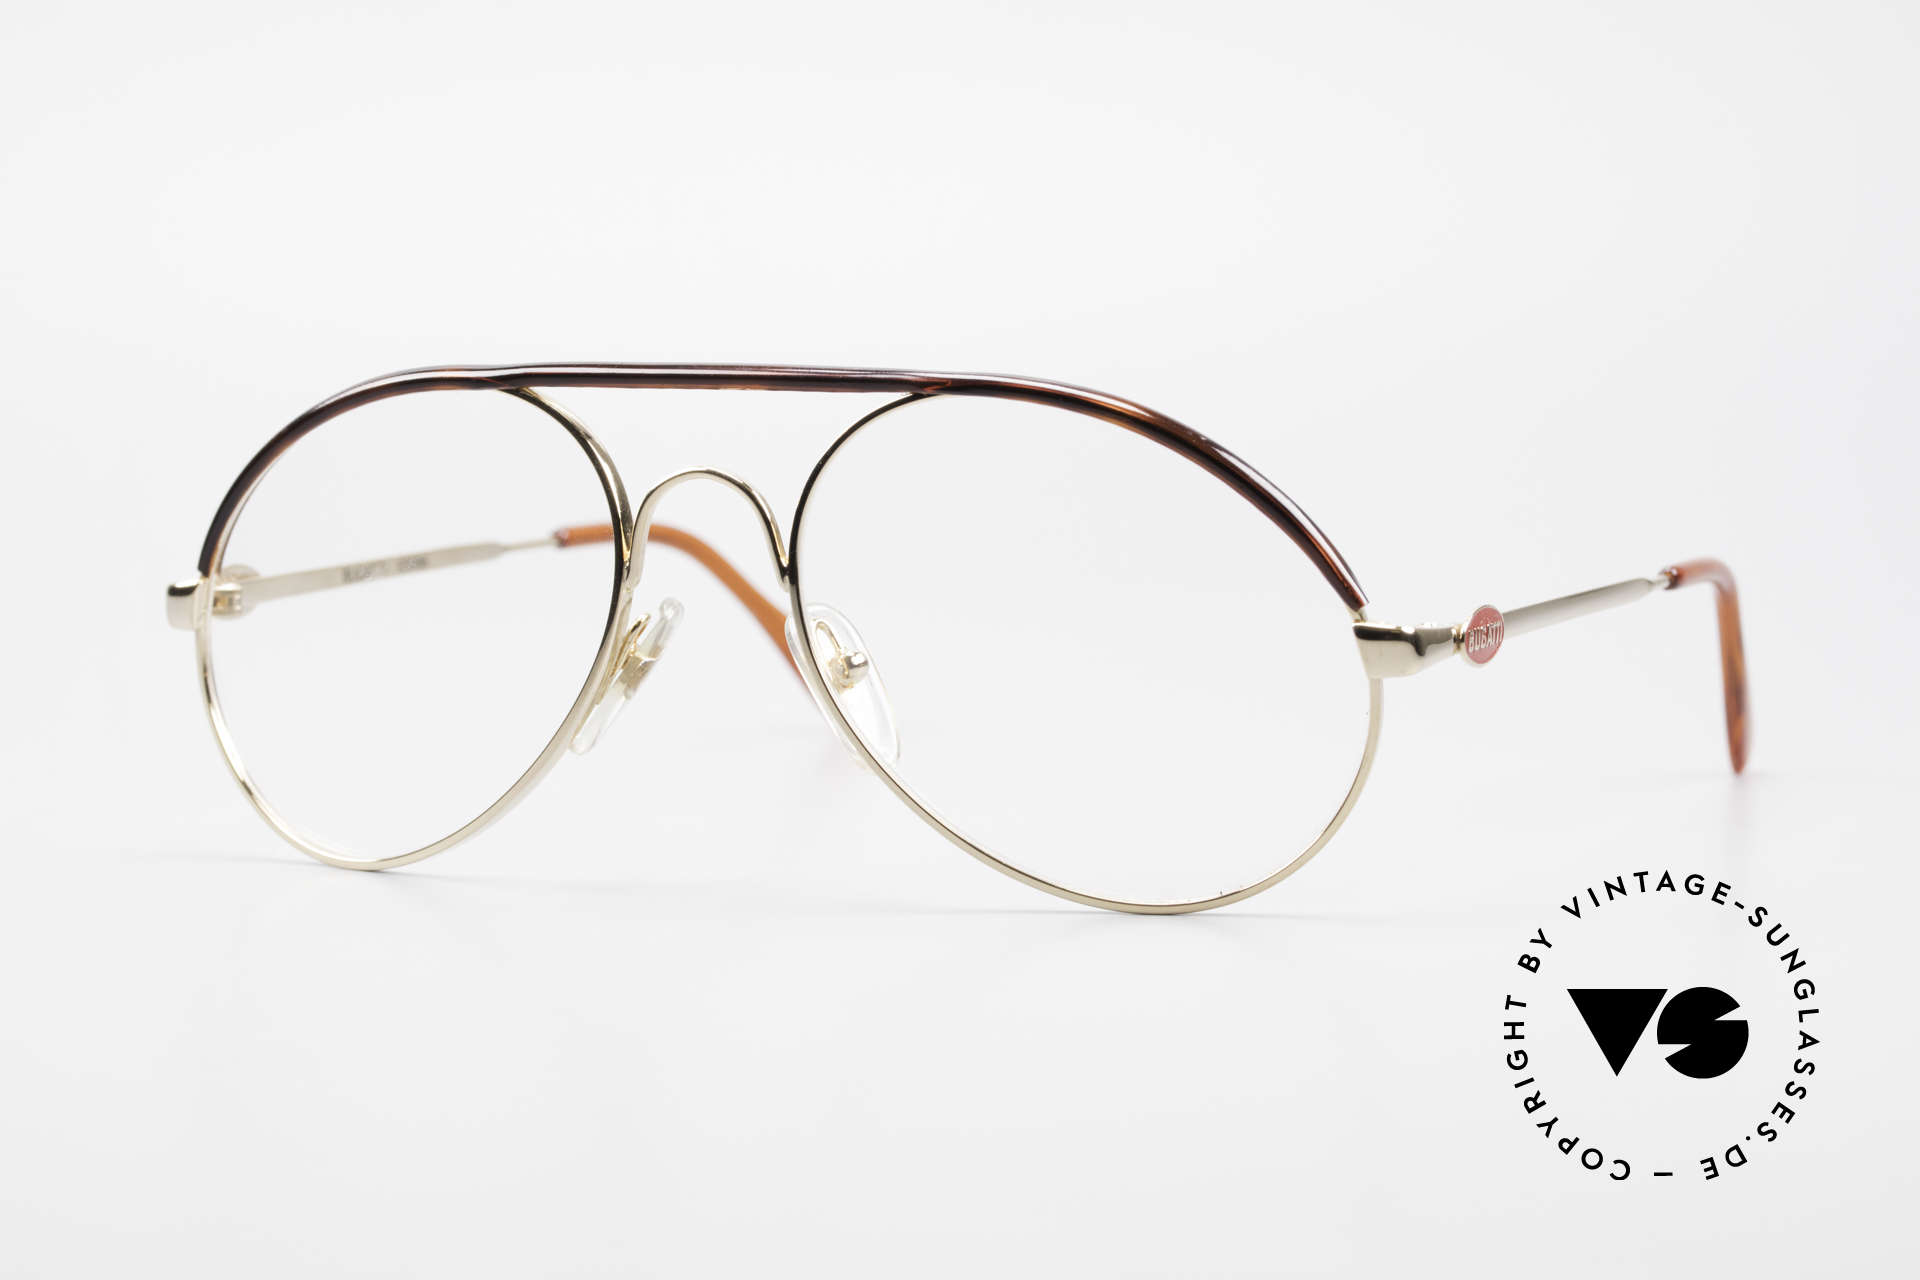 Bugatti 65986 Men's 80's Frame Gold Plated, classic Bugatti eyeglasses from app. 1985/86, Made for Men